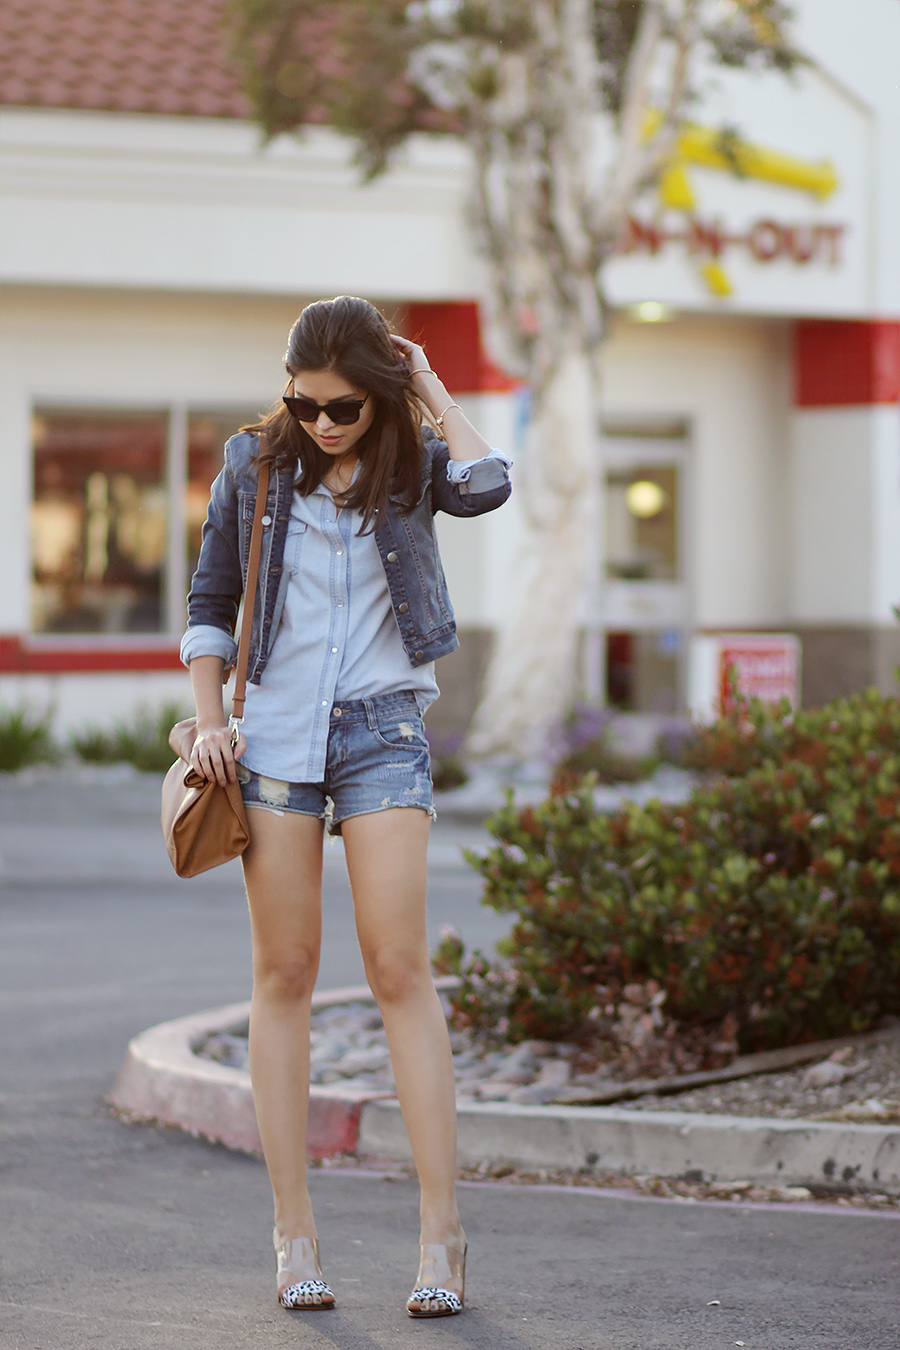 Fake Leather Is Wearing Denim Jacket From Papaya, Denim Shirt And Ripped Denim Shorts From SheInside And Lucite Sandals From Guess